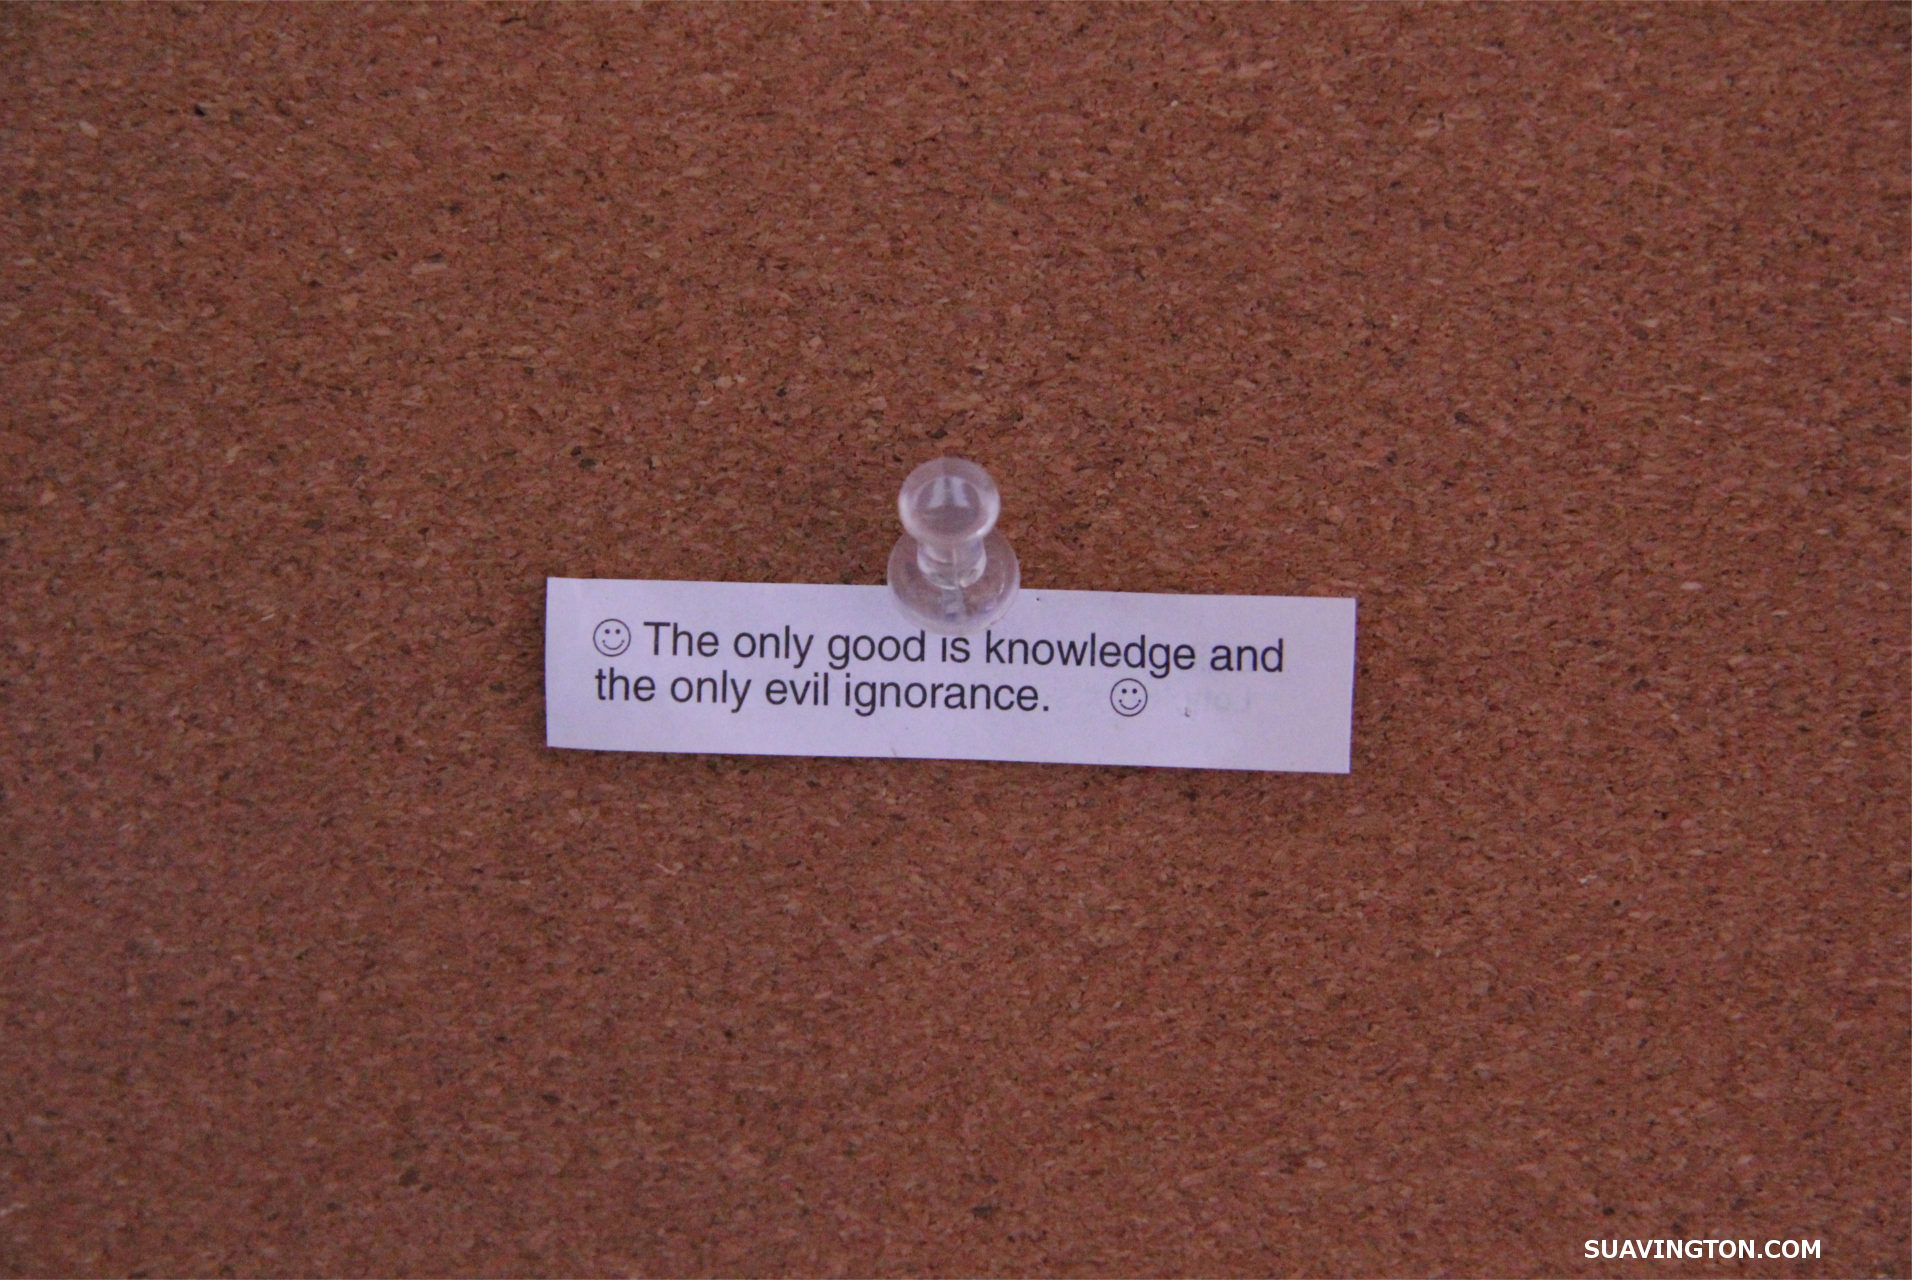 The Only Good is Knowledge and the Only Evil is Ignorance